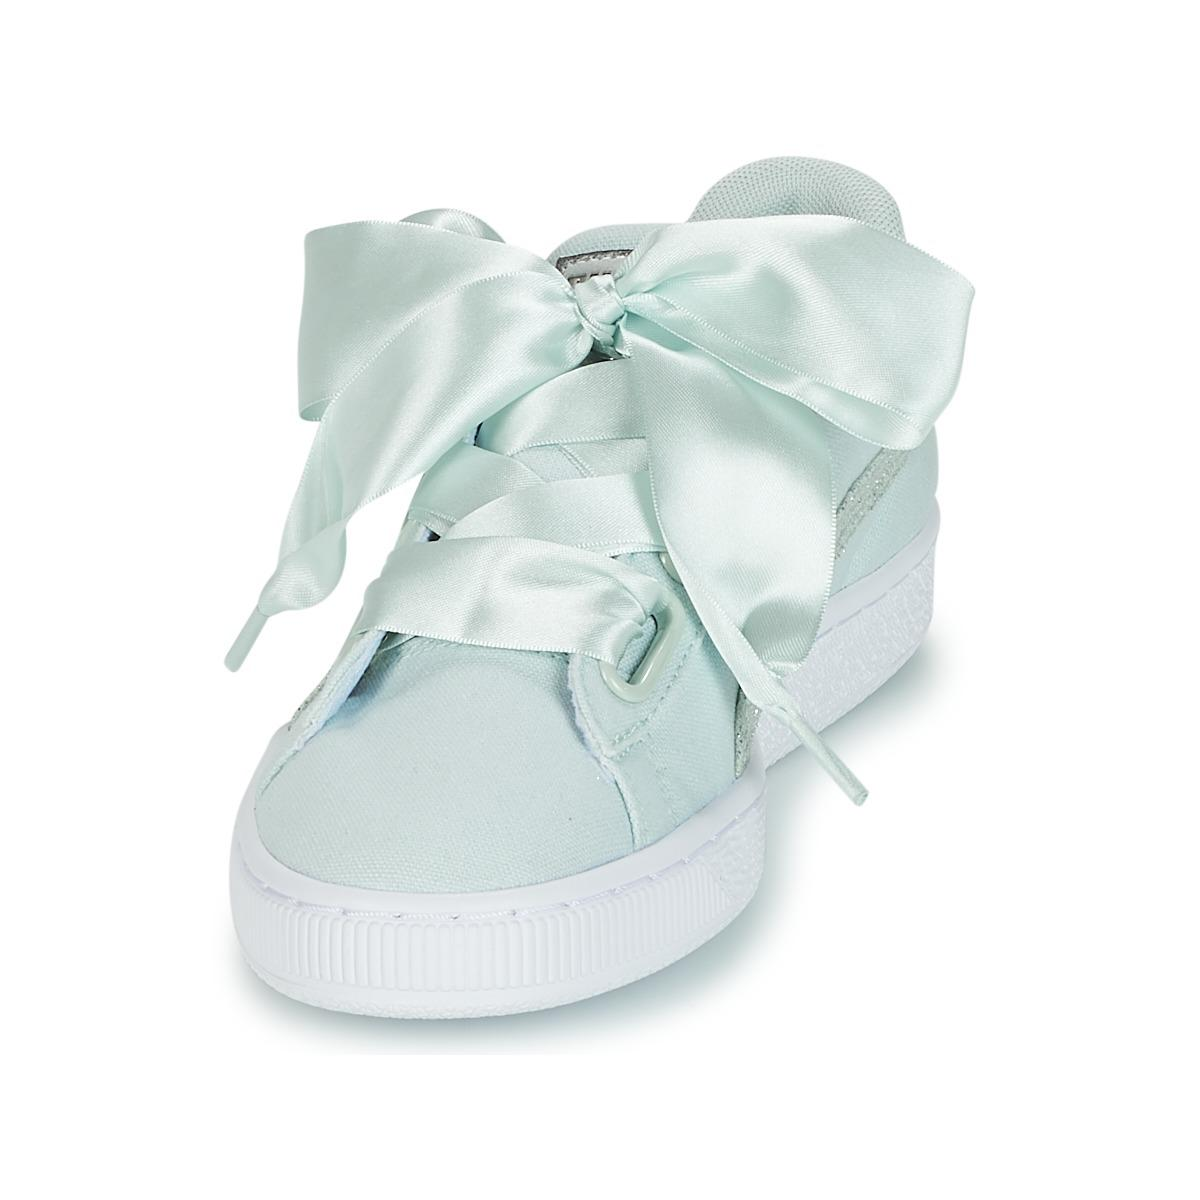 meet c2031 f0422 PUMA Basket Heart Canvas W's Shoes (trainers) in Green - Lyst